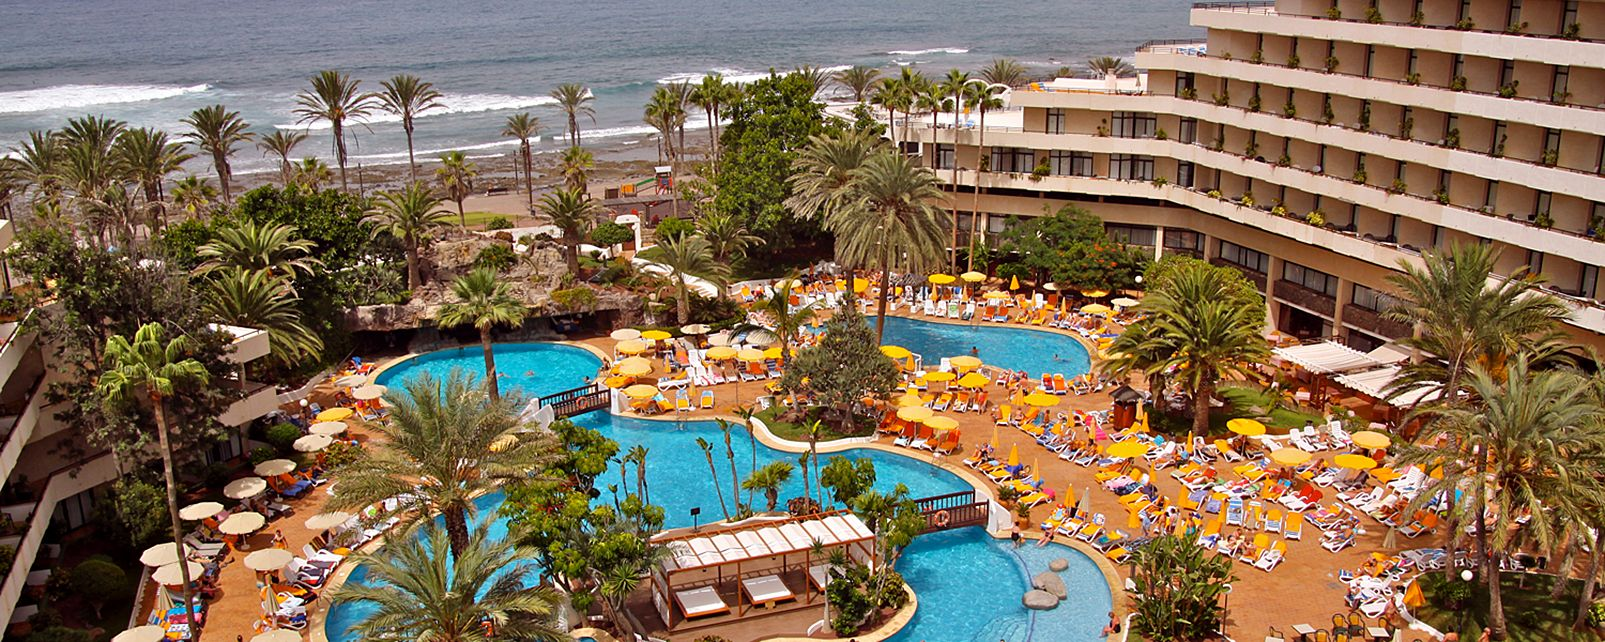 Playa De Las Americas Spain Hotels